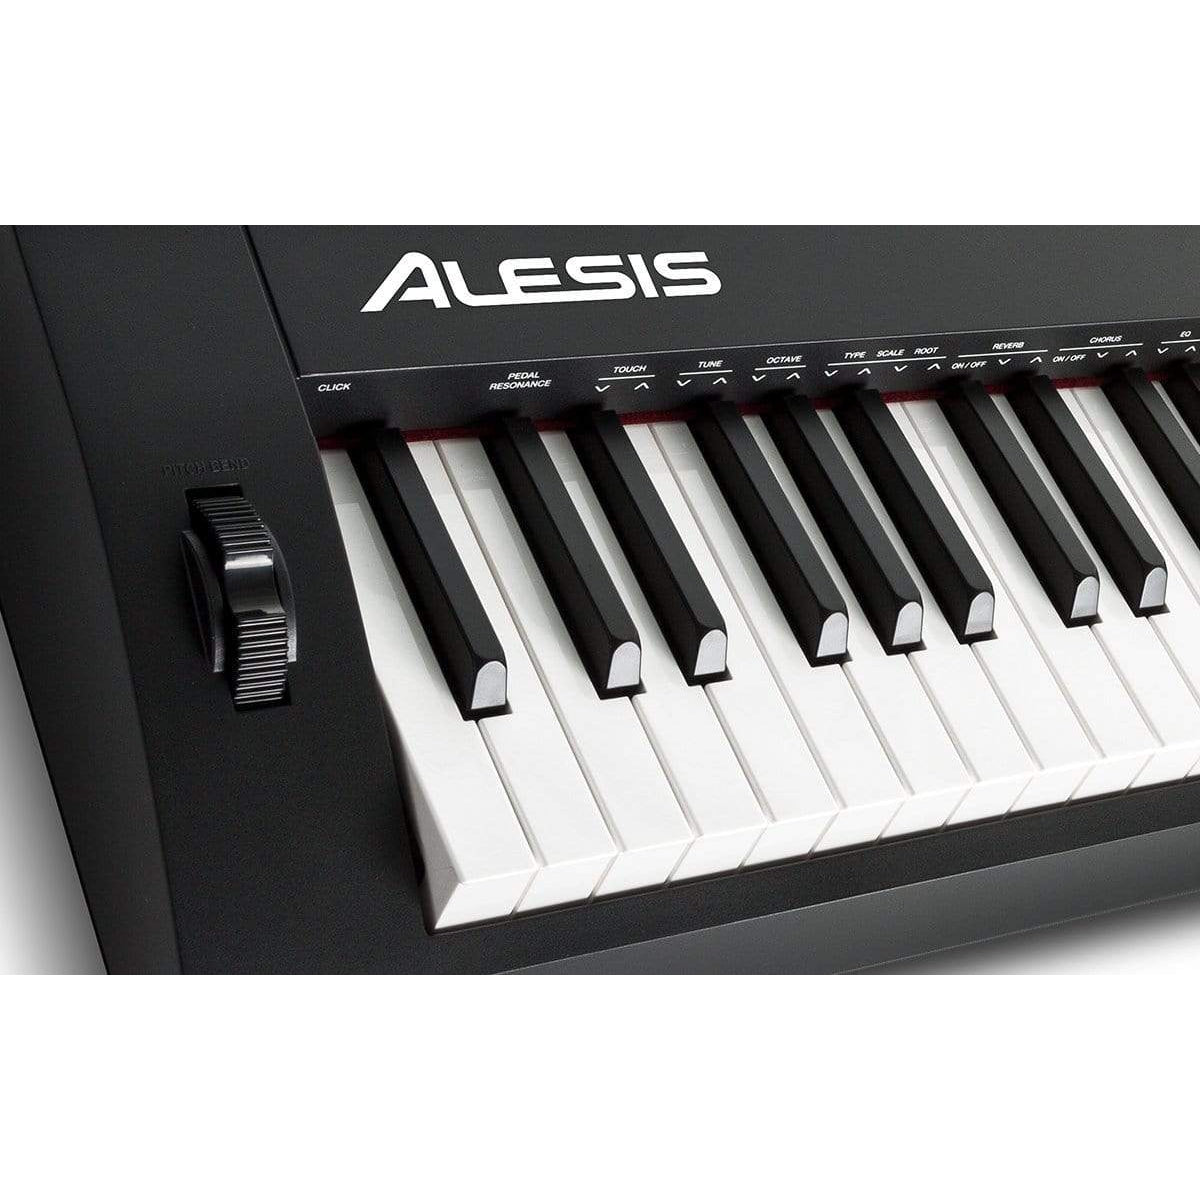 Alesis Stage Piano Alesis Coda Pro 88-Key Digital Piano with Hammer-Action Keys